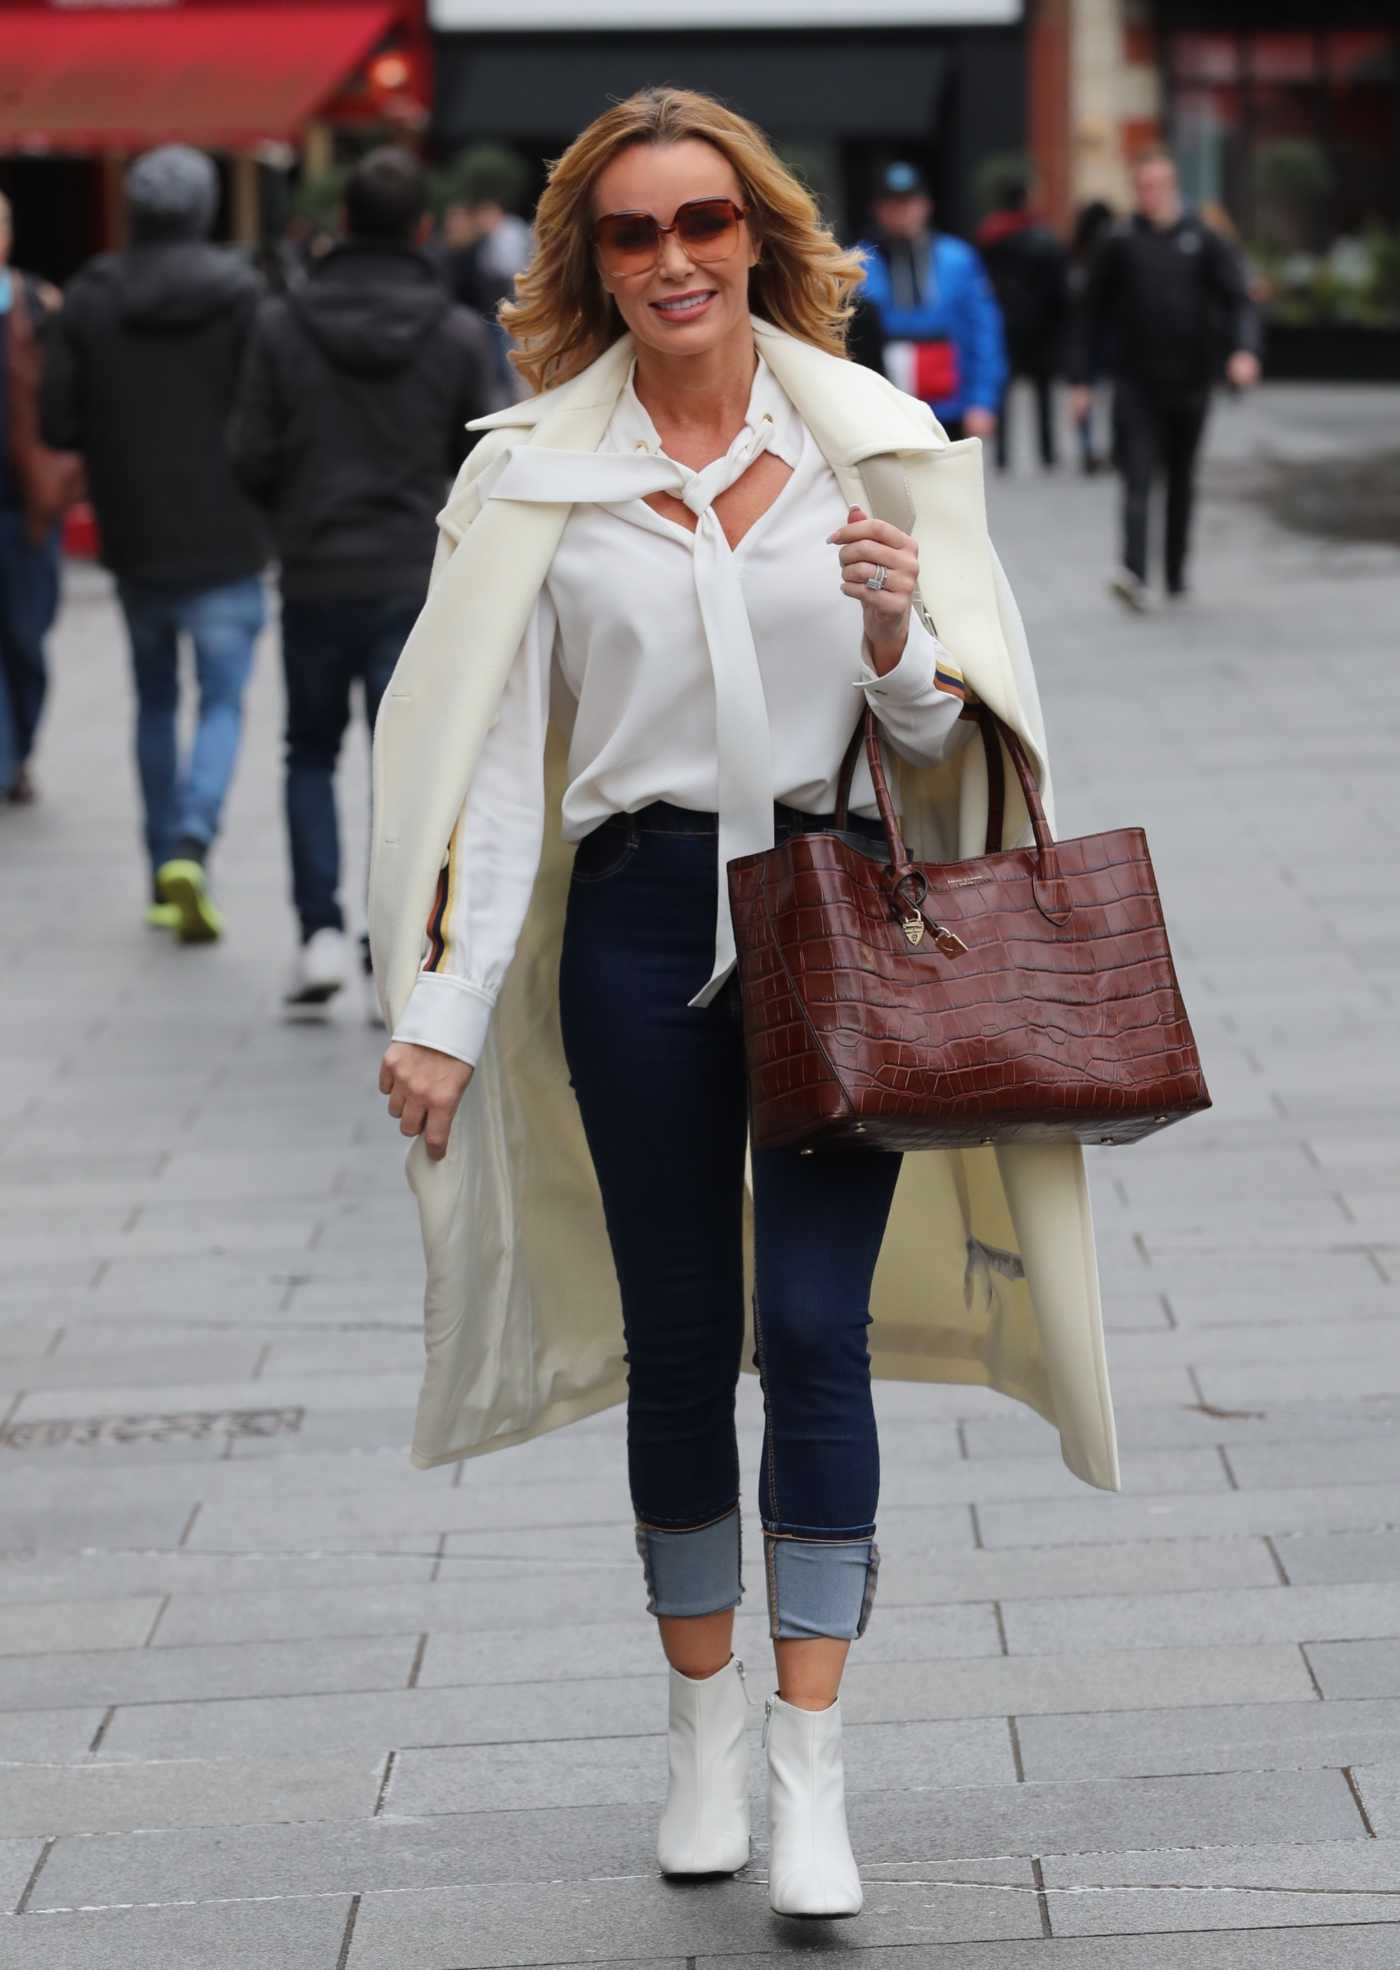 Amanda Holden in a White Coat Exits the Heart Radio in London 01/31/2020